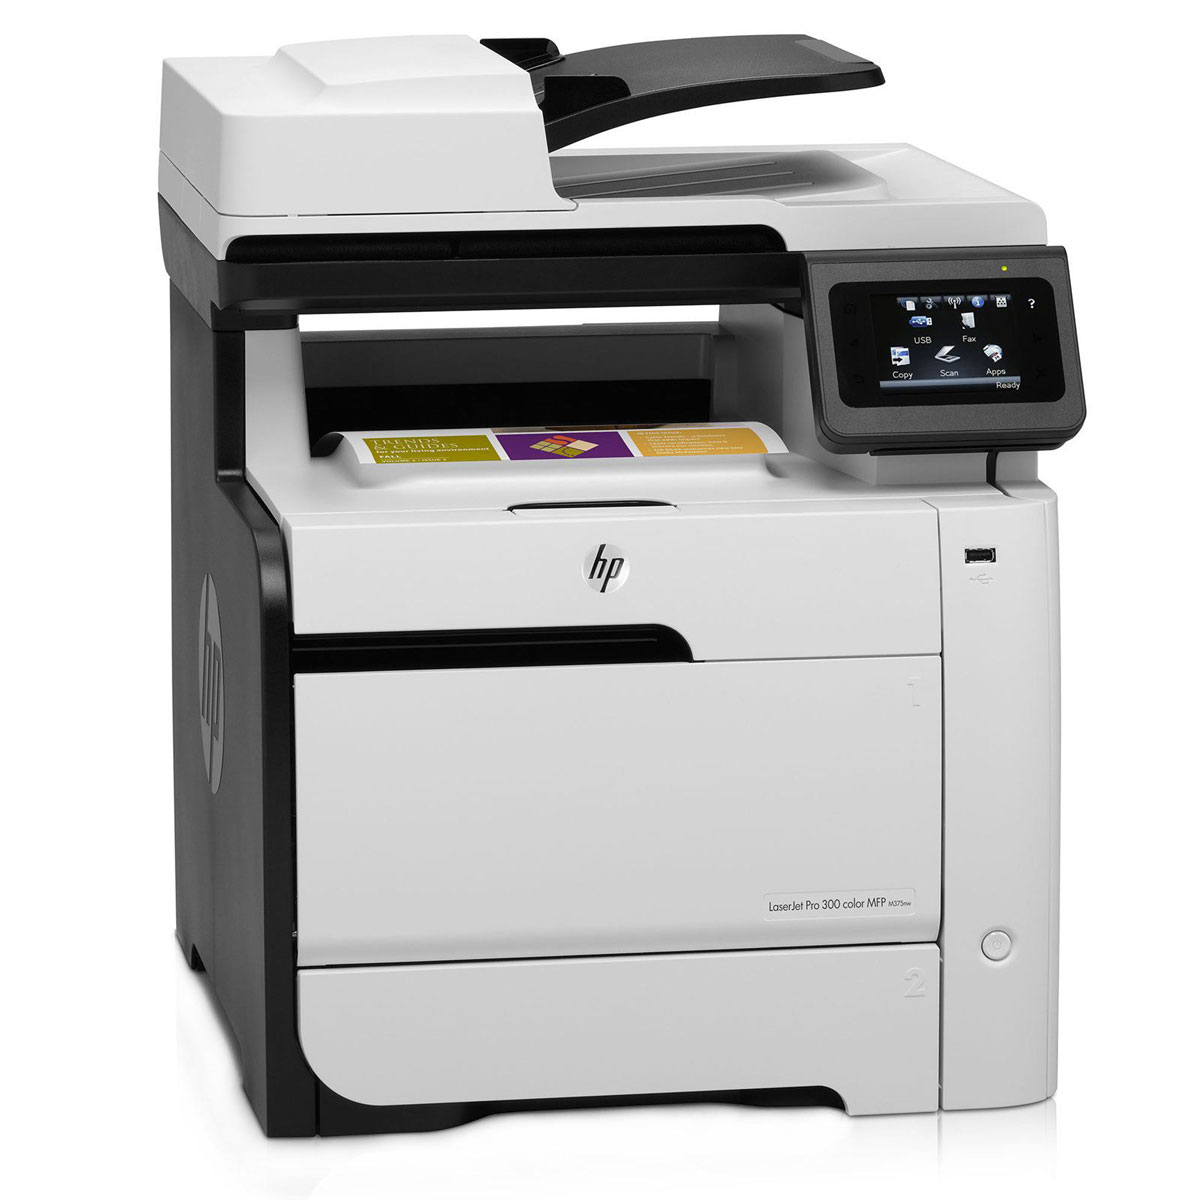 hp laserjet pro 300 color mfp m375nw ce903a imprimante multifonction hp sur. Black Bedroom Furniture Sets. Home Design Ideas